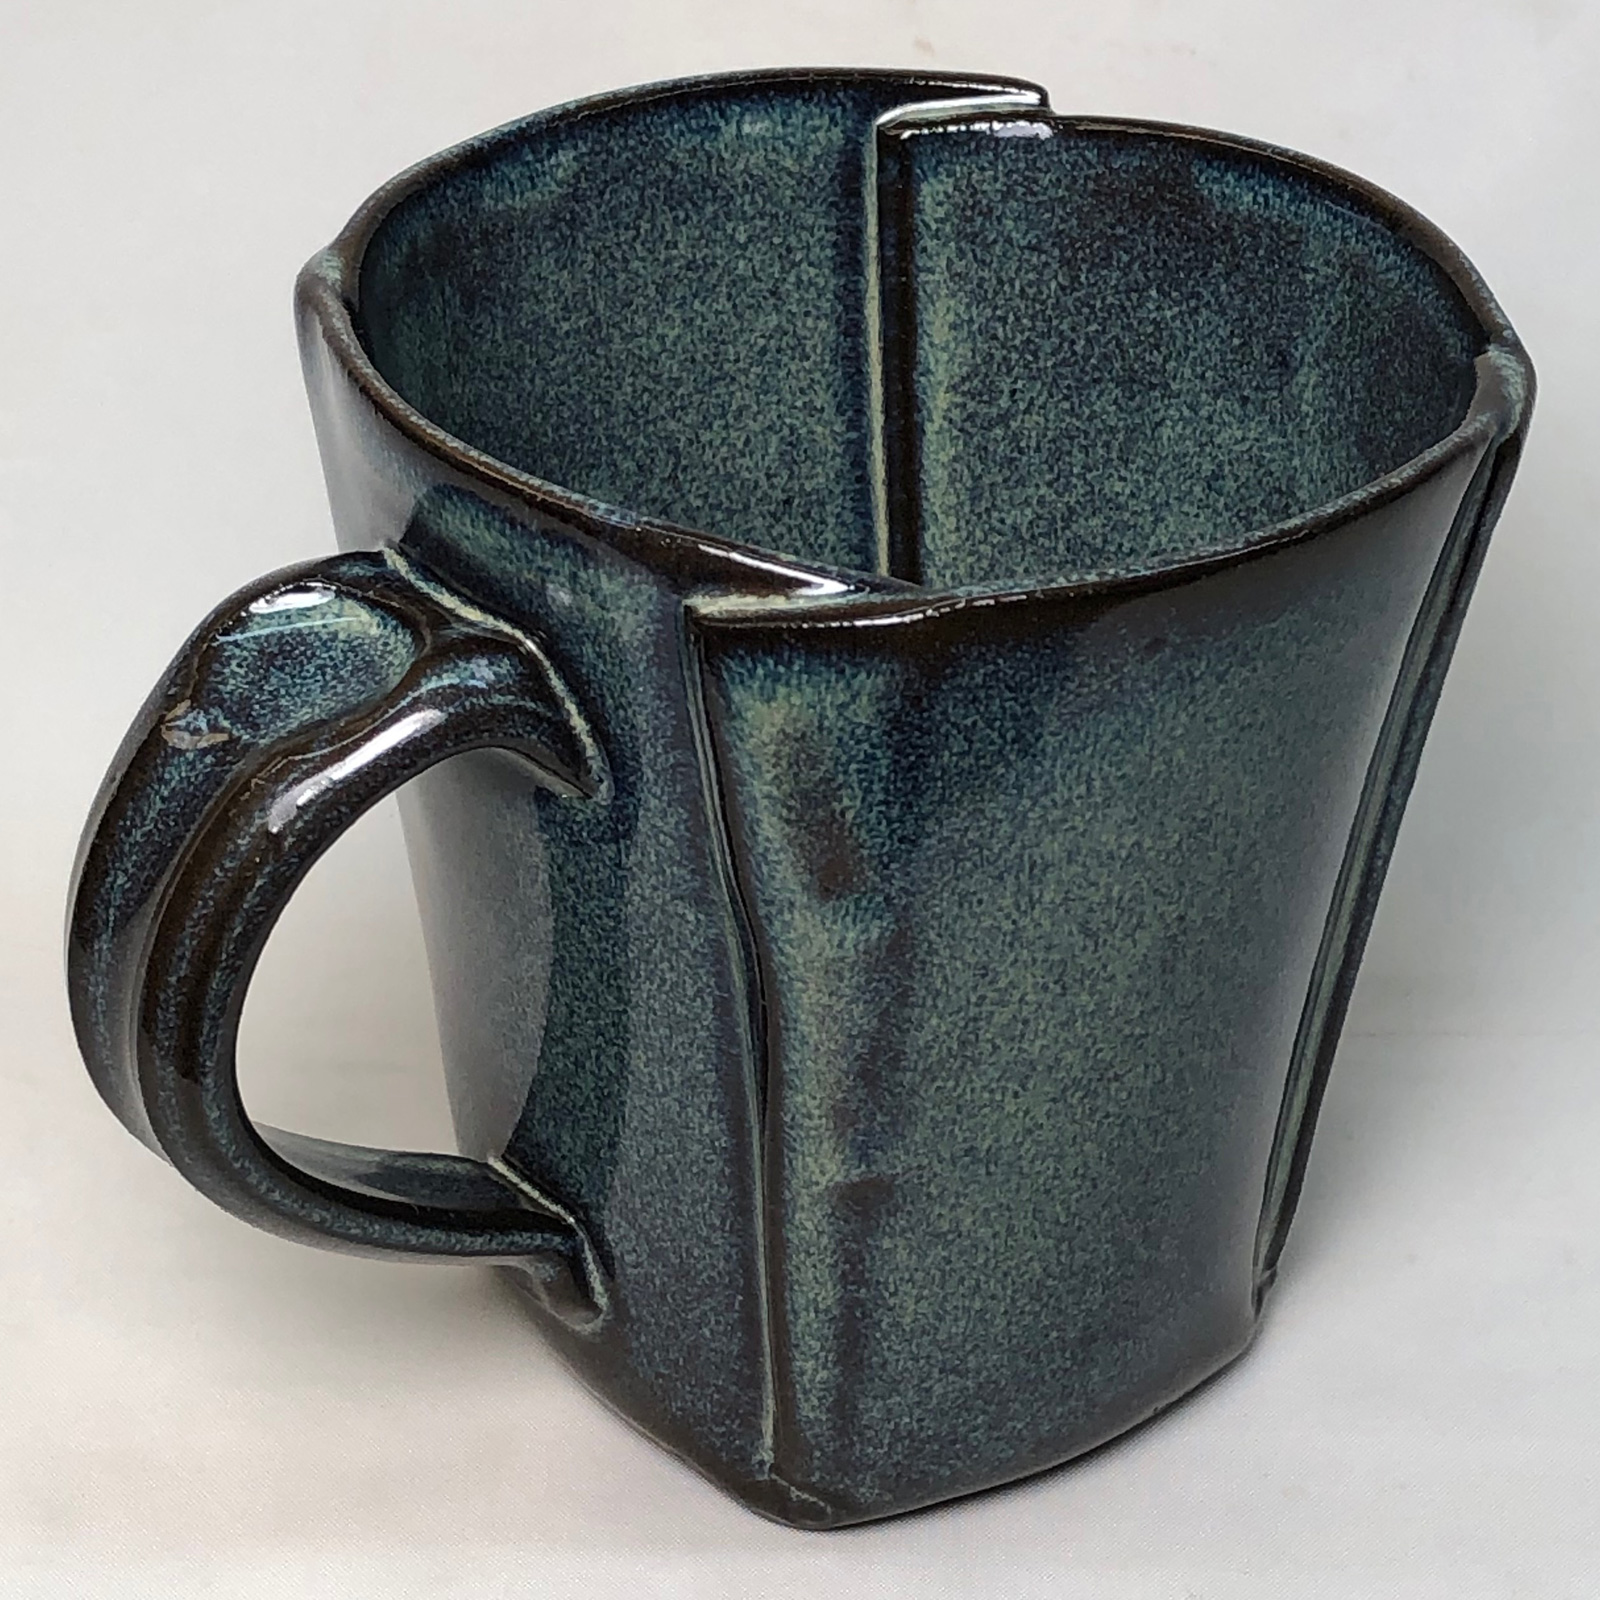 Cone 6 rutile blue glaze on a black porcelain body